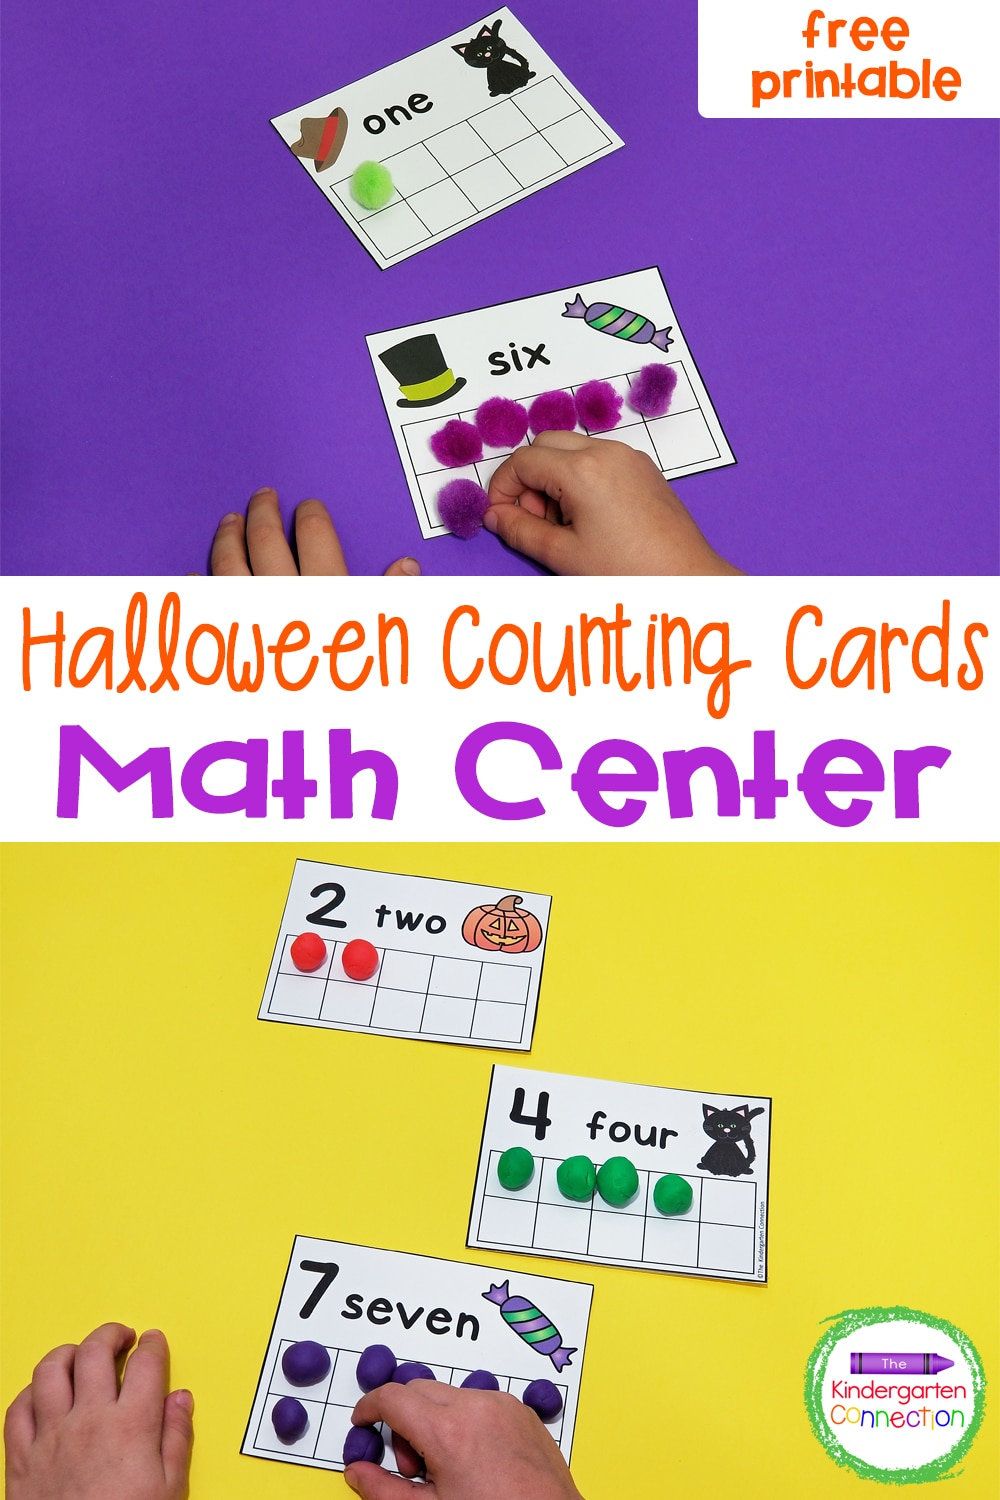 These free Halloween Counting Cards for Pre-K & Kindergarten will have your students excited to practice reading number words and counting skills!